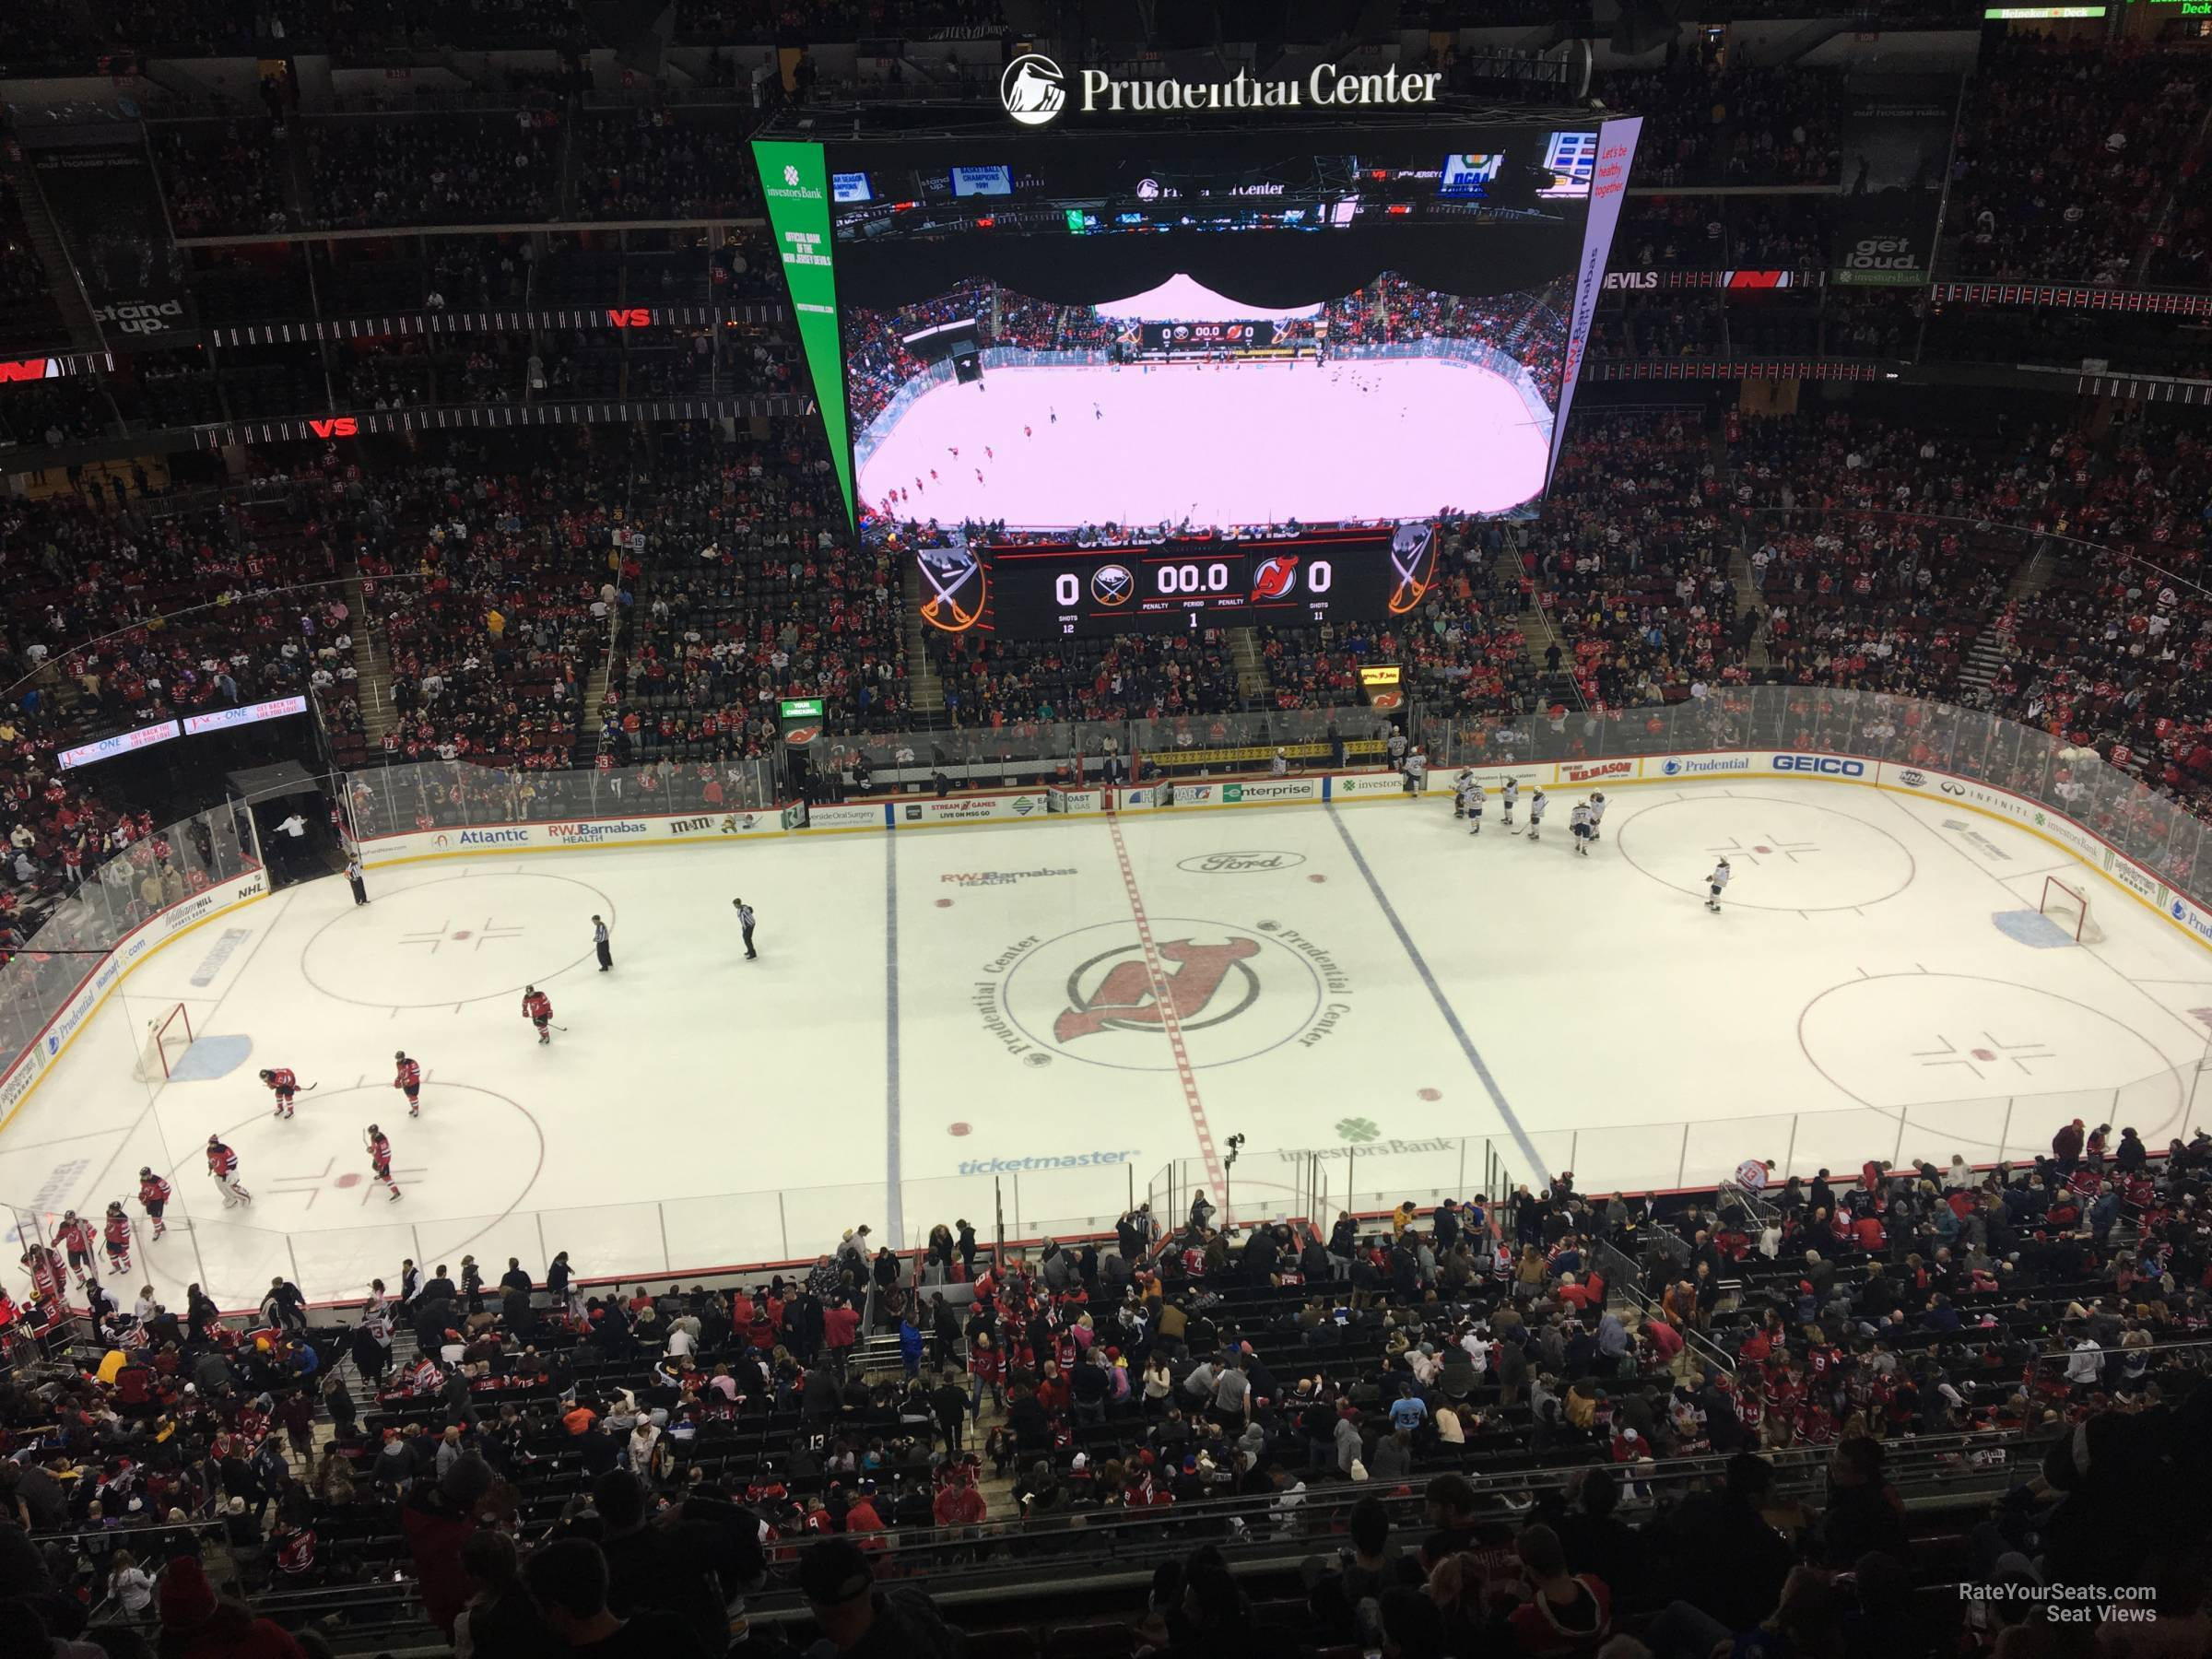 New Jersey Devils Seat View for Prudential Center Section 229, Row 1